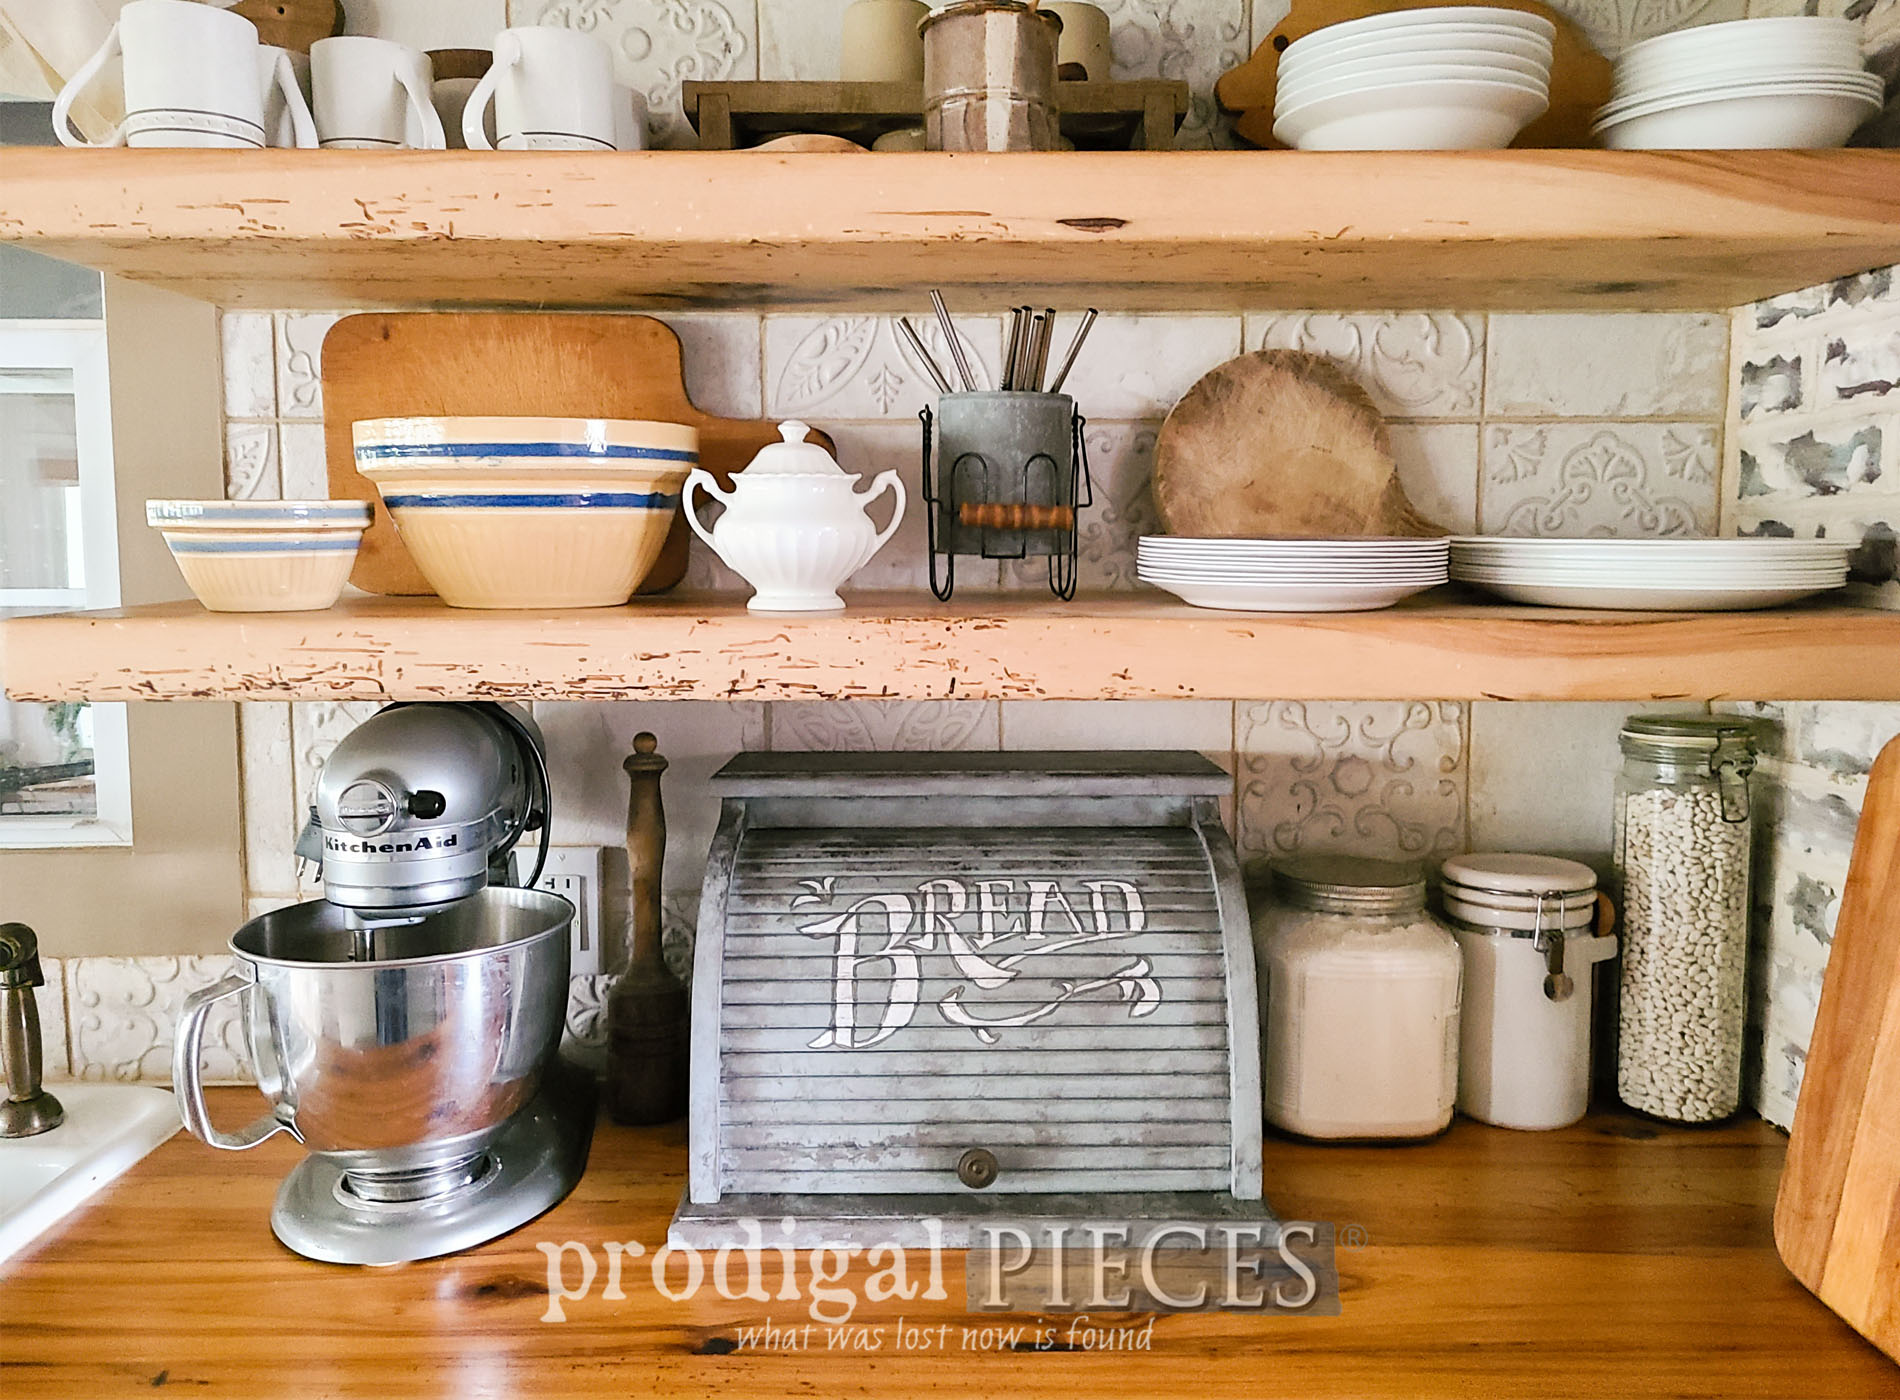 Featured Vintage Bread Box Makeover with Faux Zinc Finish by Larissa of Prodigal Pieces | prodigalpieces.com #prodigalpieces #farmhouse #vintage #home #homedecor #kitchen